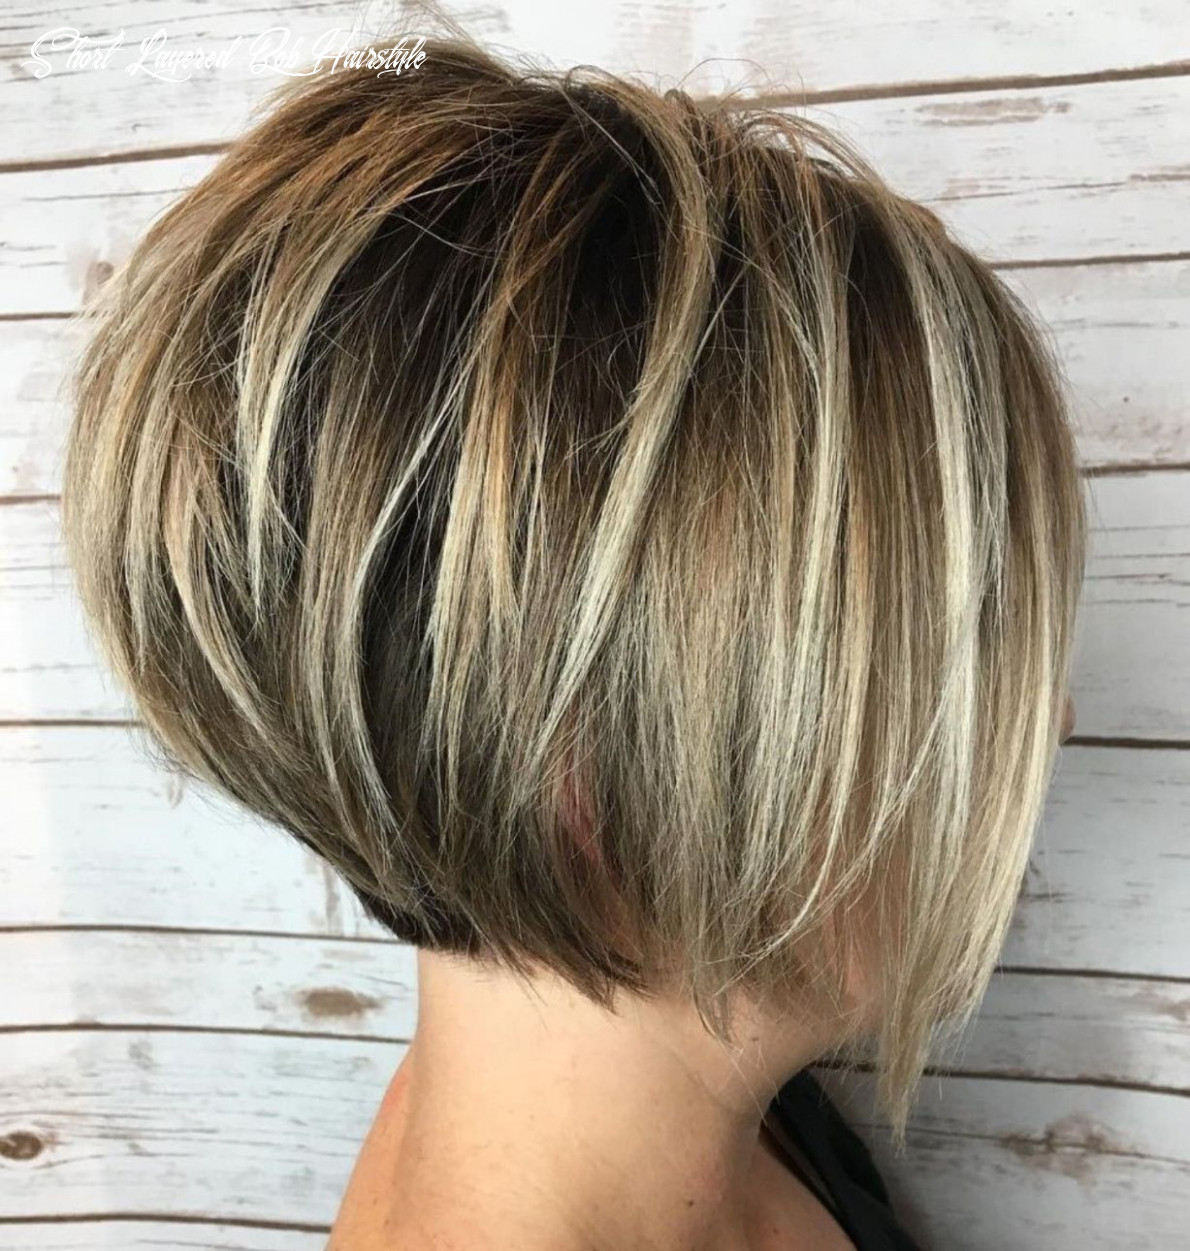 11 cute and easy to style short layered hairstyles | frisuren